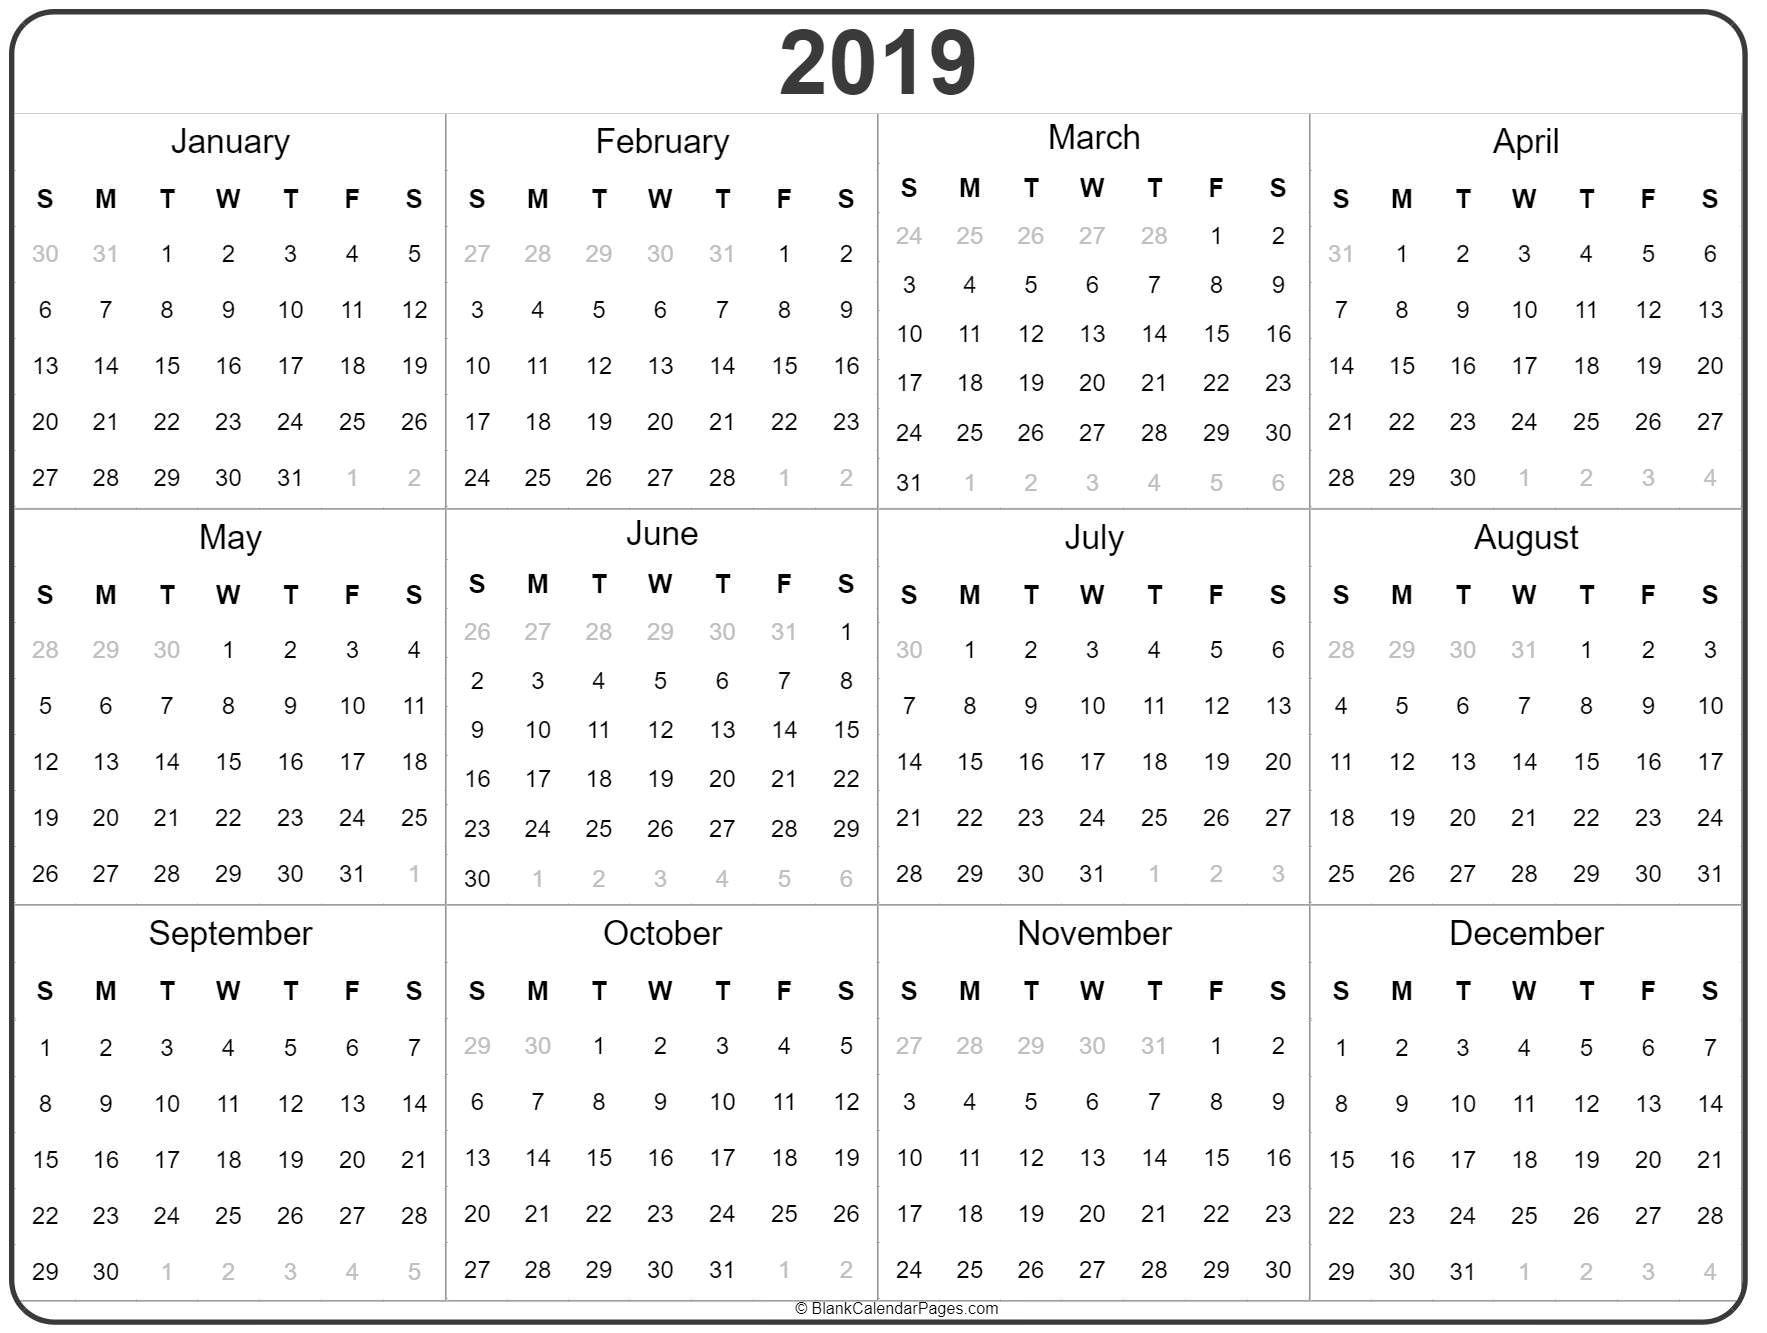 Calendar 2019 Year 2019 year calendar | yearly printable